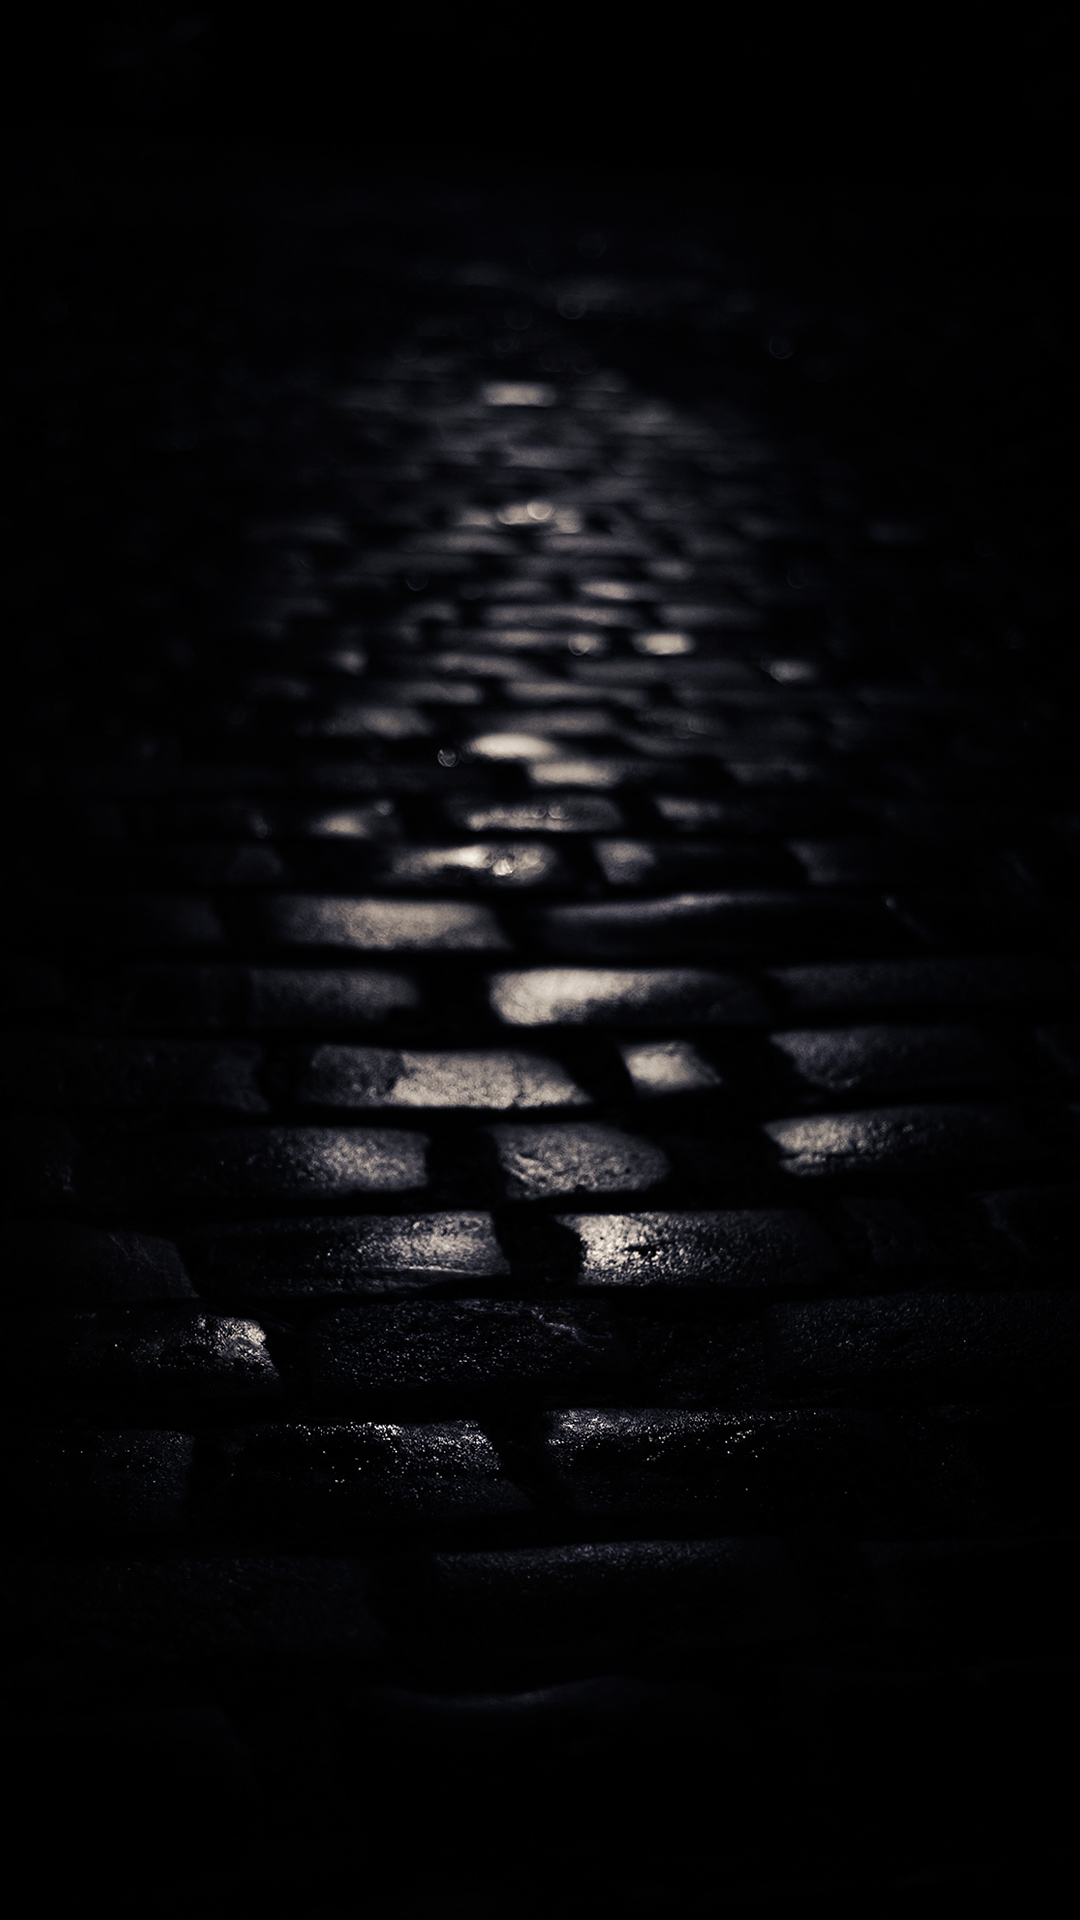 Street cobblestones Amoled Wallpaper 1080x1920